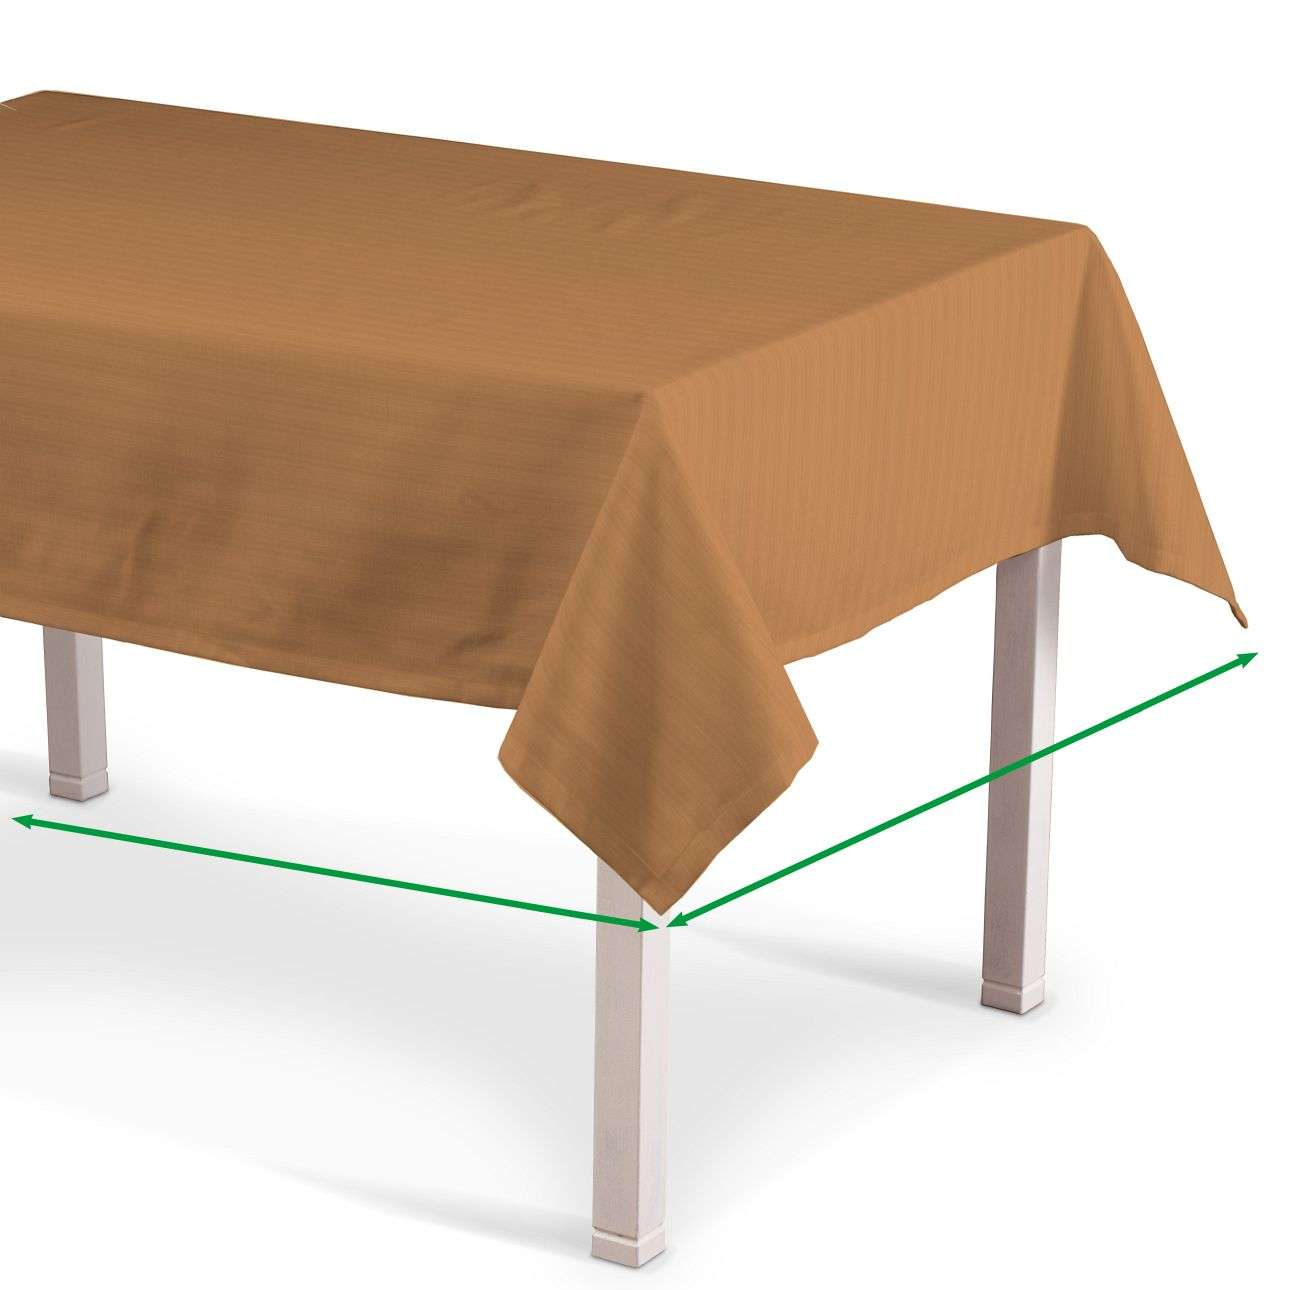 Rectangular tablecloth in collection SALE, fabric: 104-21